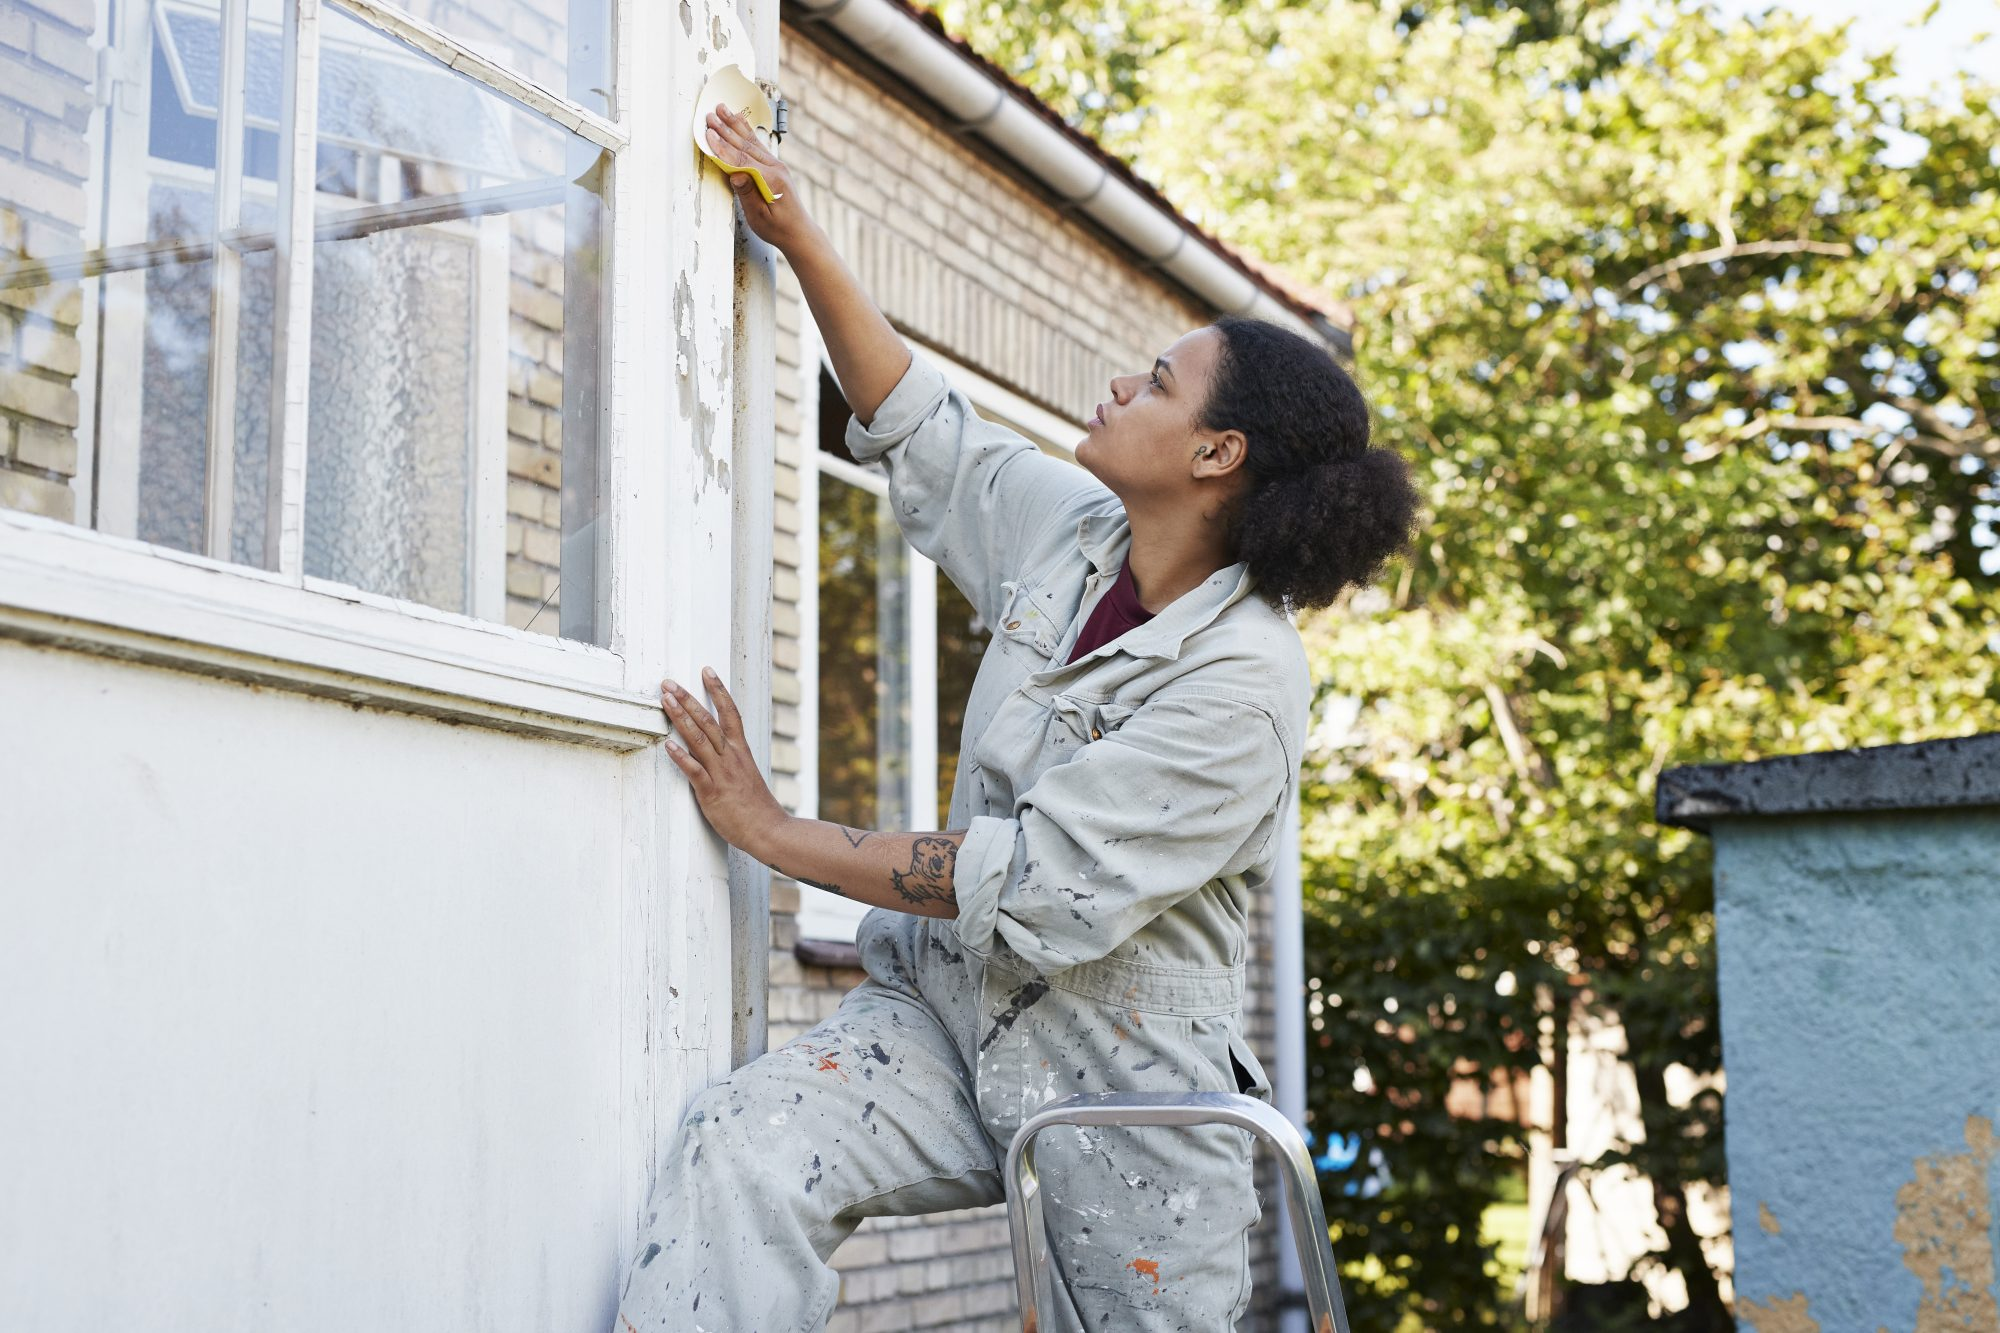 woman sanding exterior of home